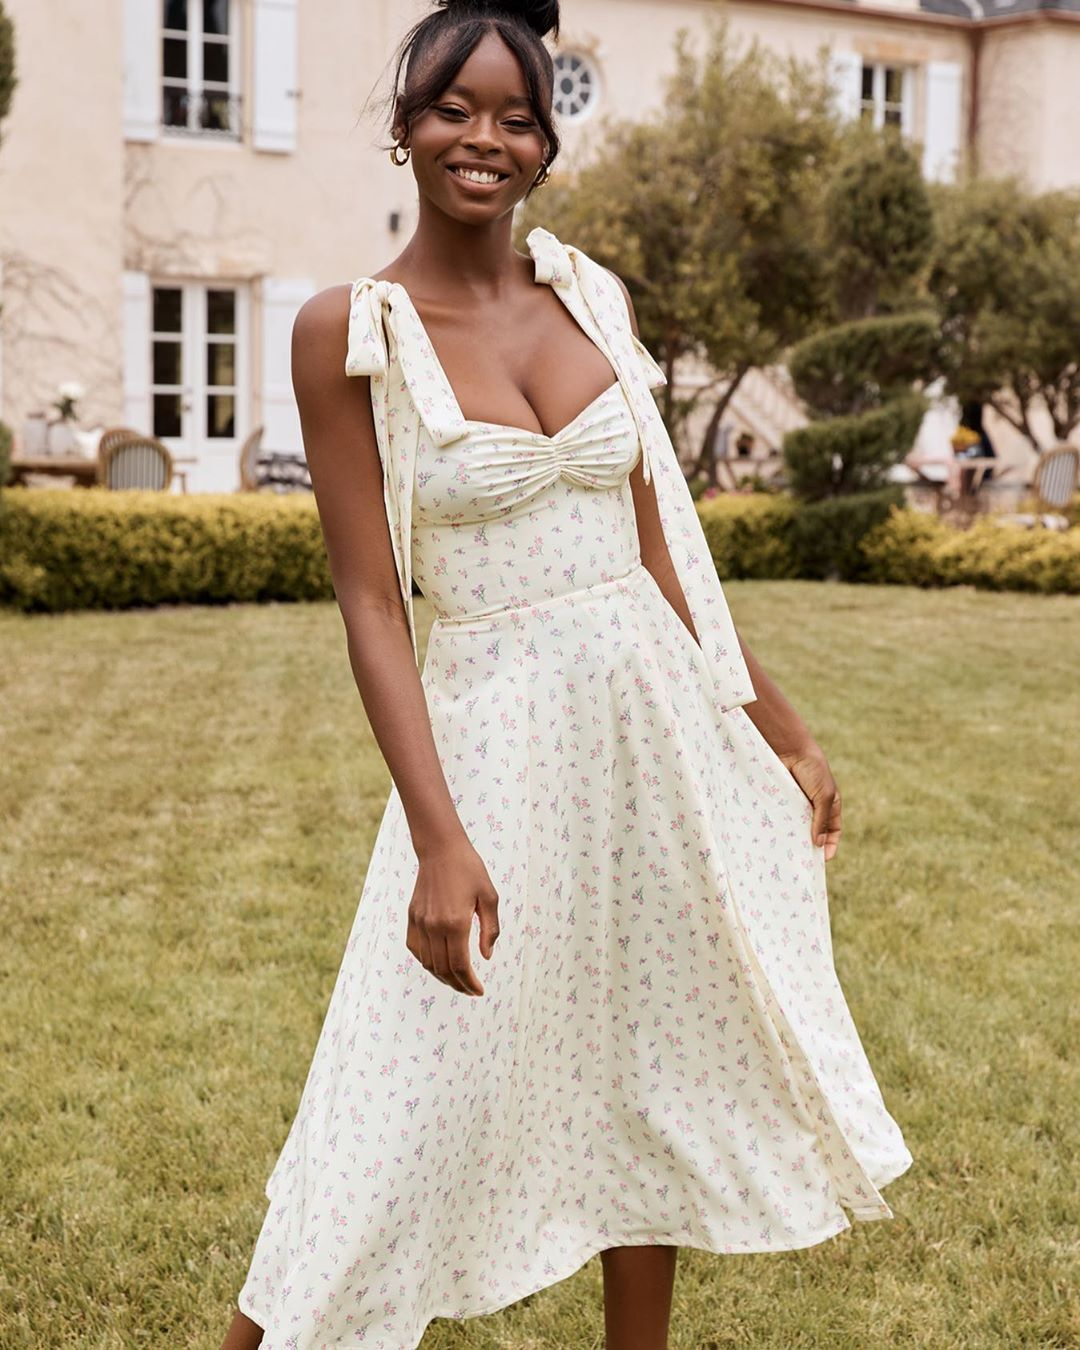 House Of Cb On Instagram Pretty Summer Vibe In The New Alicia Dress Also Available In Pink Shop H Summer Dresses For Women Floral Dress Summer Fancy Gowns [ 1350 x 1080 Pixel ]